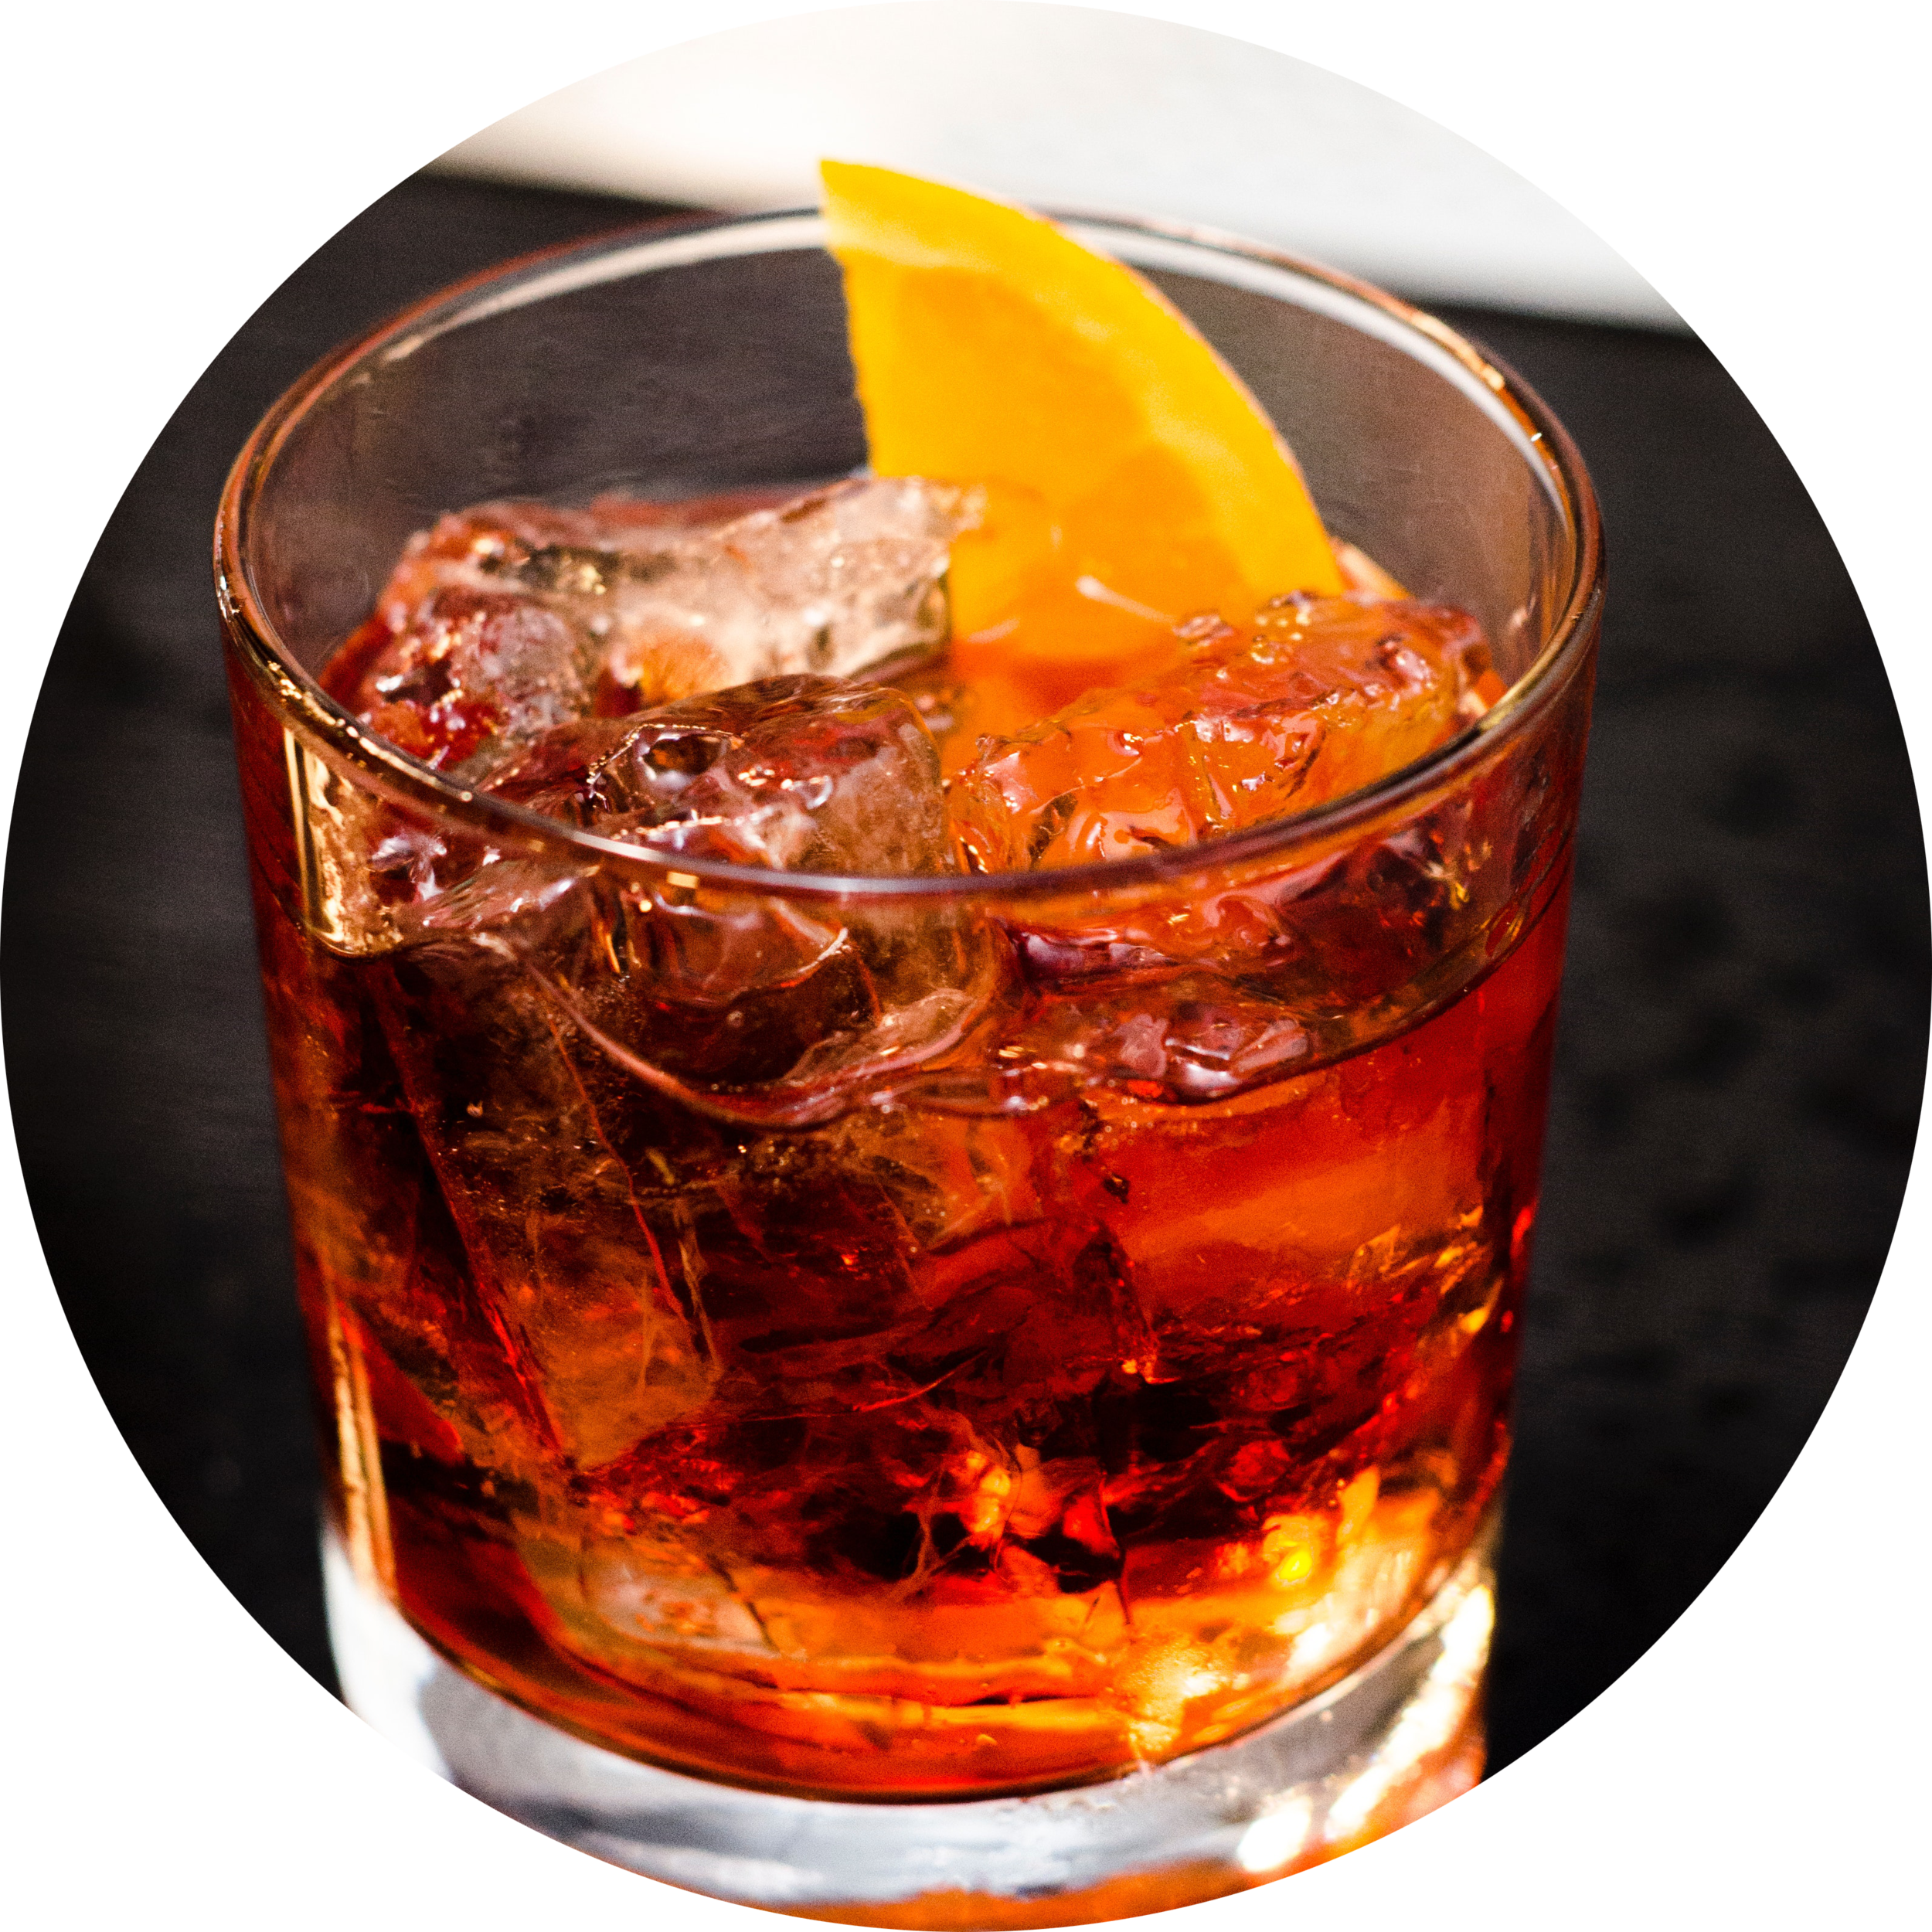 OLD FASHIONED   1 sugar cube  2 dashes angostura  2oz Amber Rum  Orange Twist    Served in a rocks glass on ice